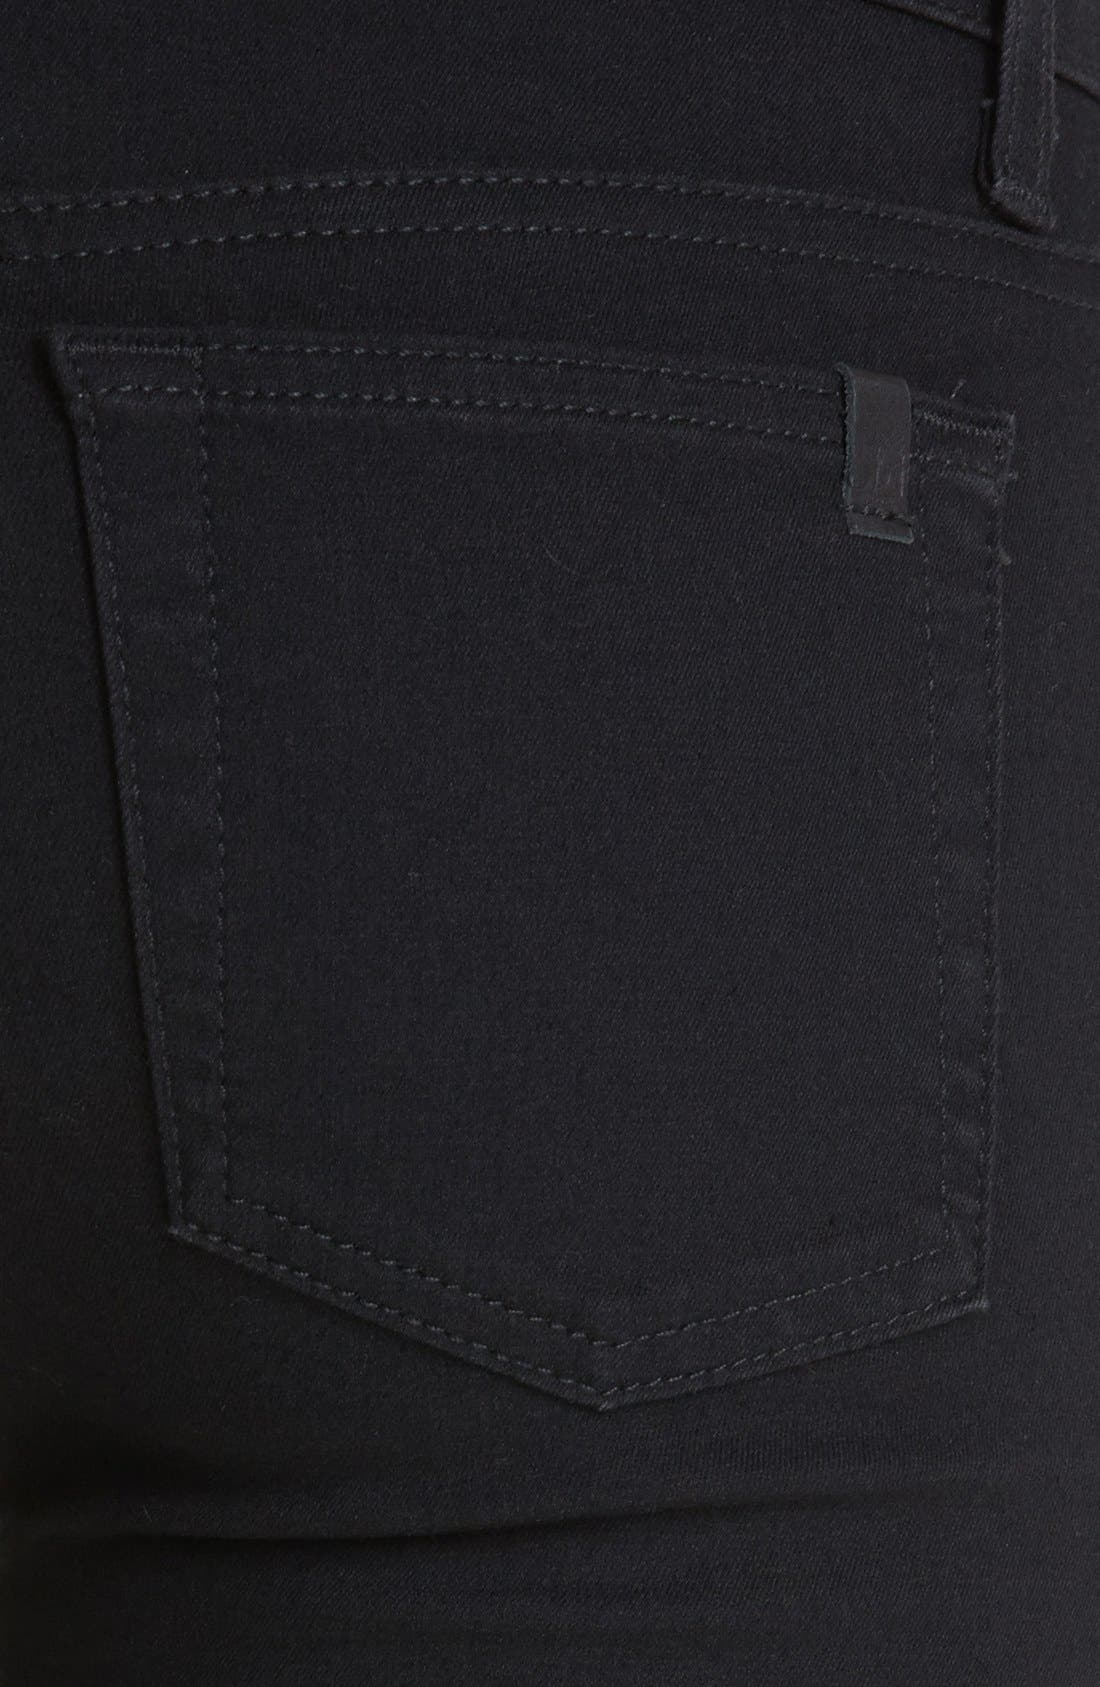 Skinny Stretch Jeans,                             Alternate thumbnail 6, color,                             001